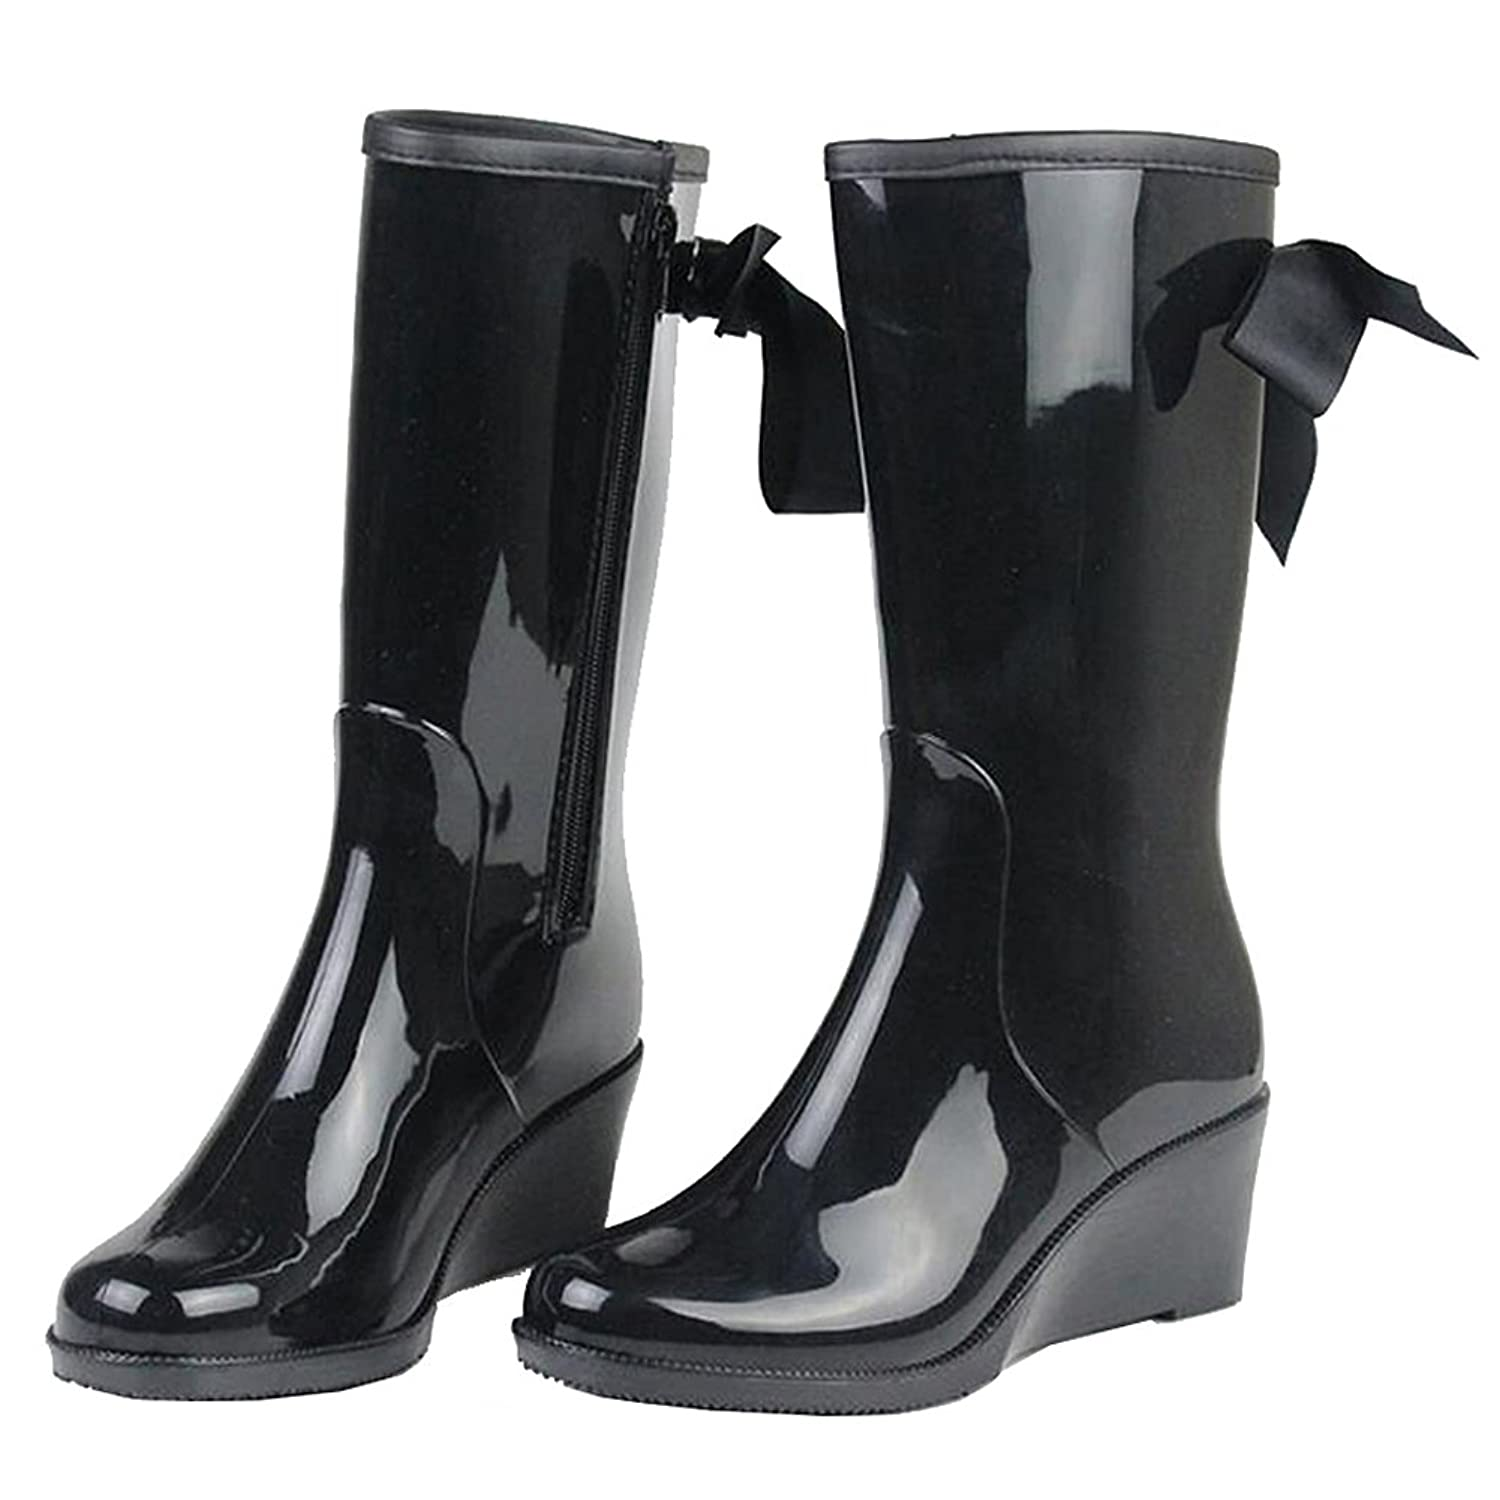 Retro Boots, Granny Boots, 70s Boots Getmorebeauty Womens Black Belt Mid Calf Rain Boots Rubber Waterproof Wedges $39.50 AT vintagedancer.com